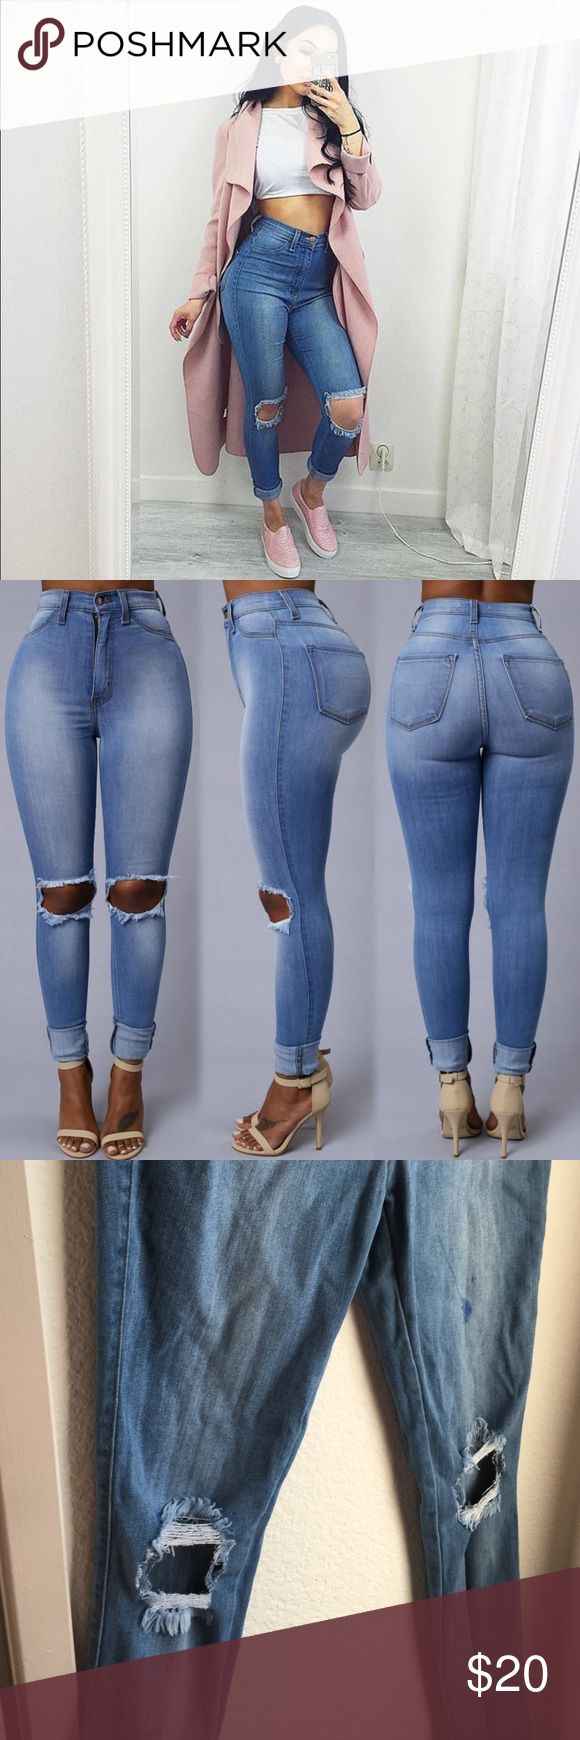 Ripped knee jeans These are the very stylish jeans from fashion nova, that go with pratically any outfit. Sadly there is a marker stain but it can probably be taken out with the right product. Fashion Nova Jeans Skinny